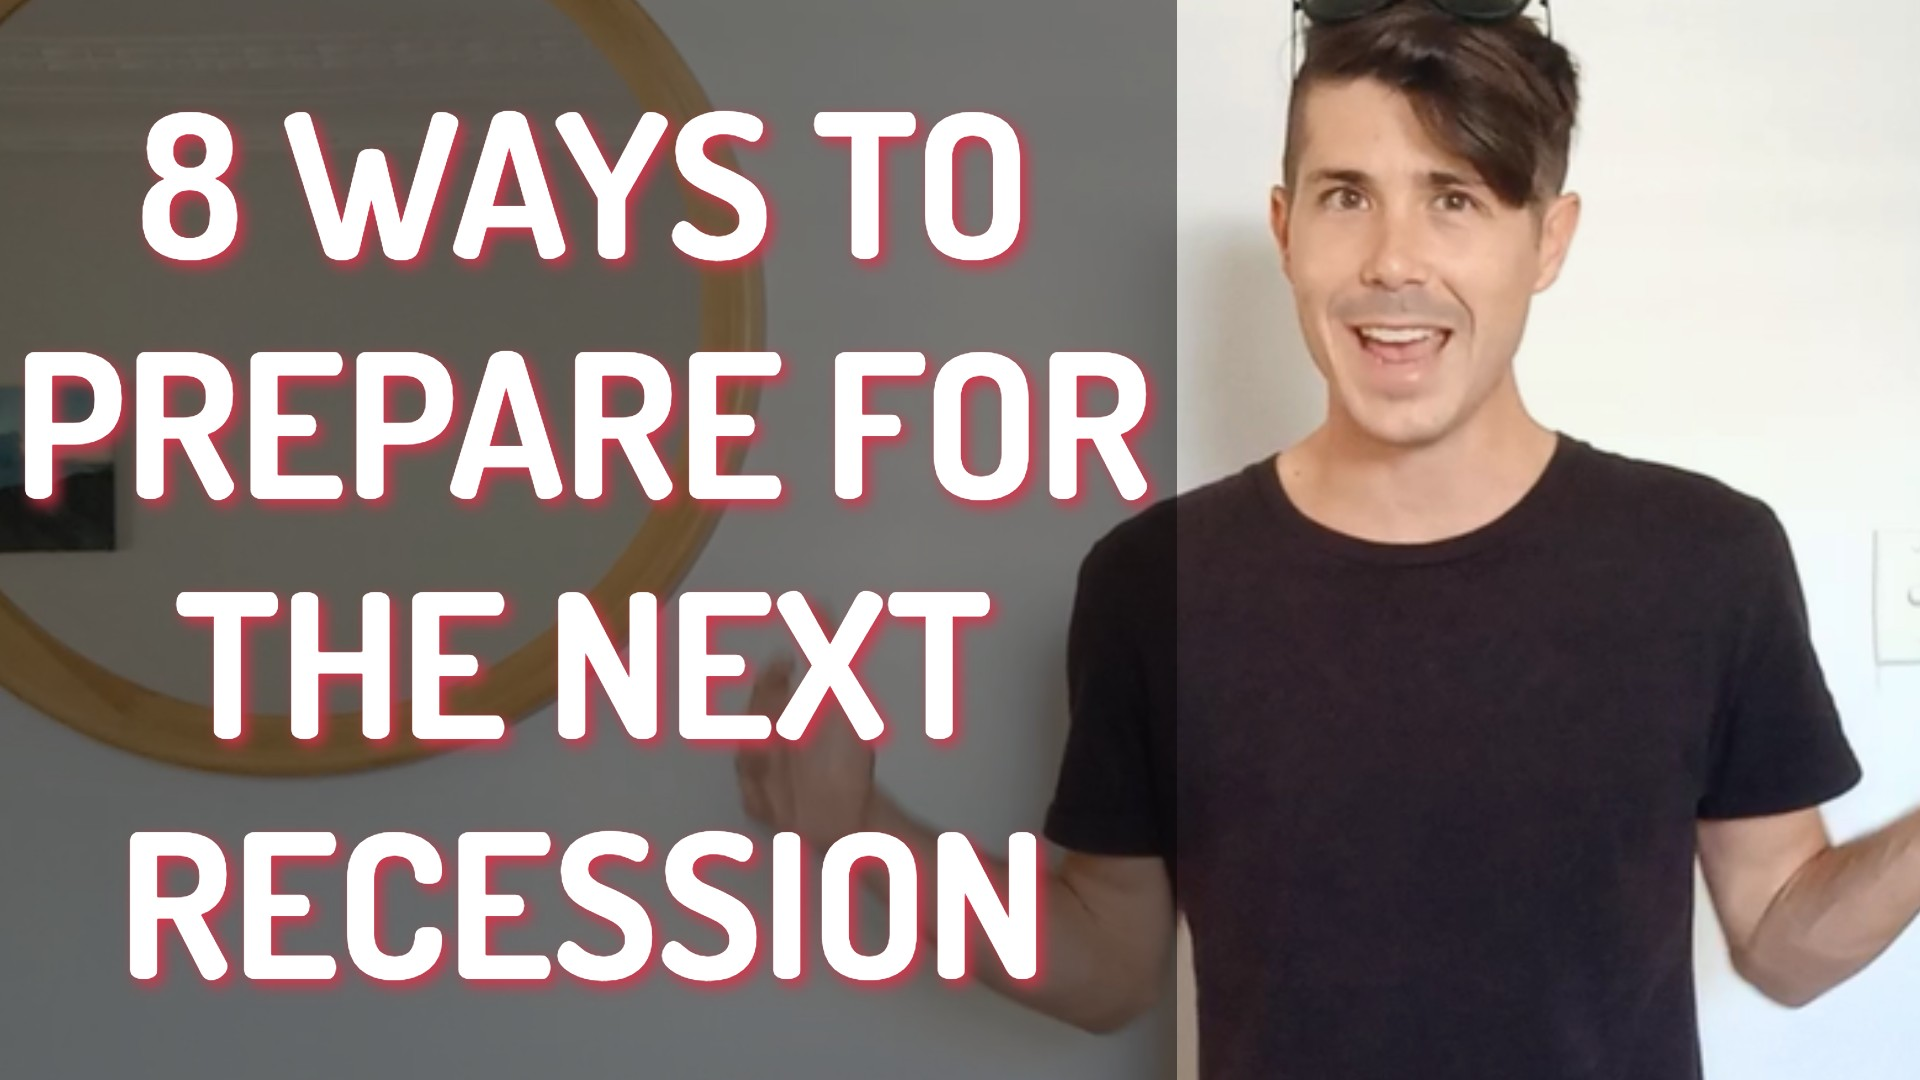 8 Ways To Prepare For The Next Recession